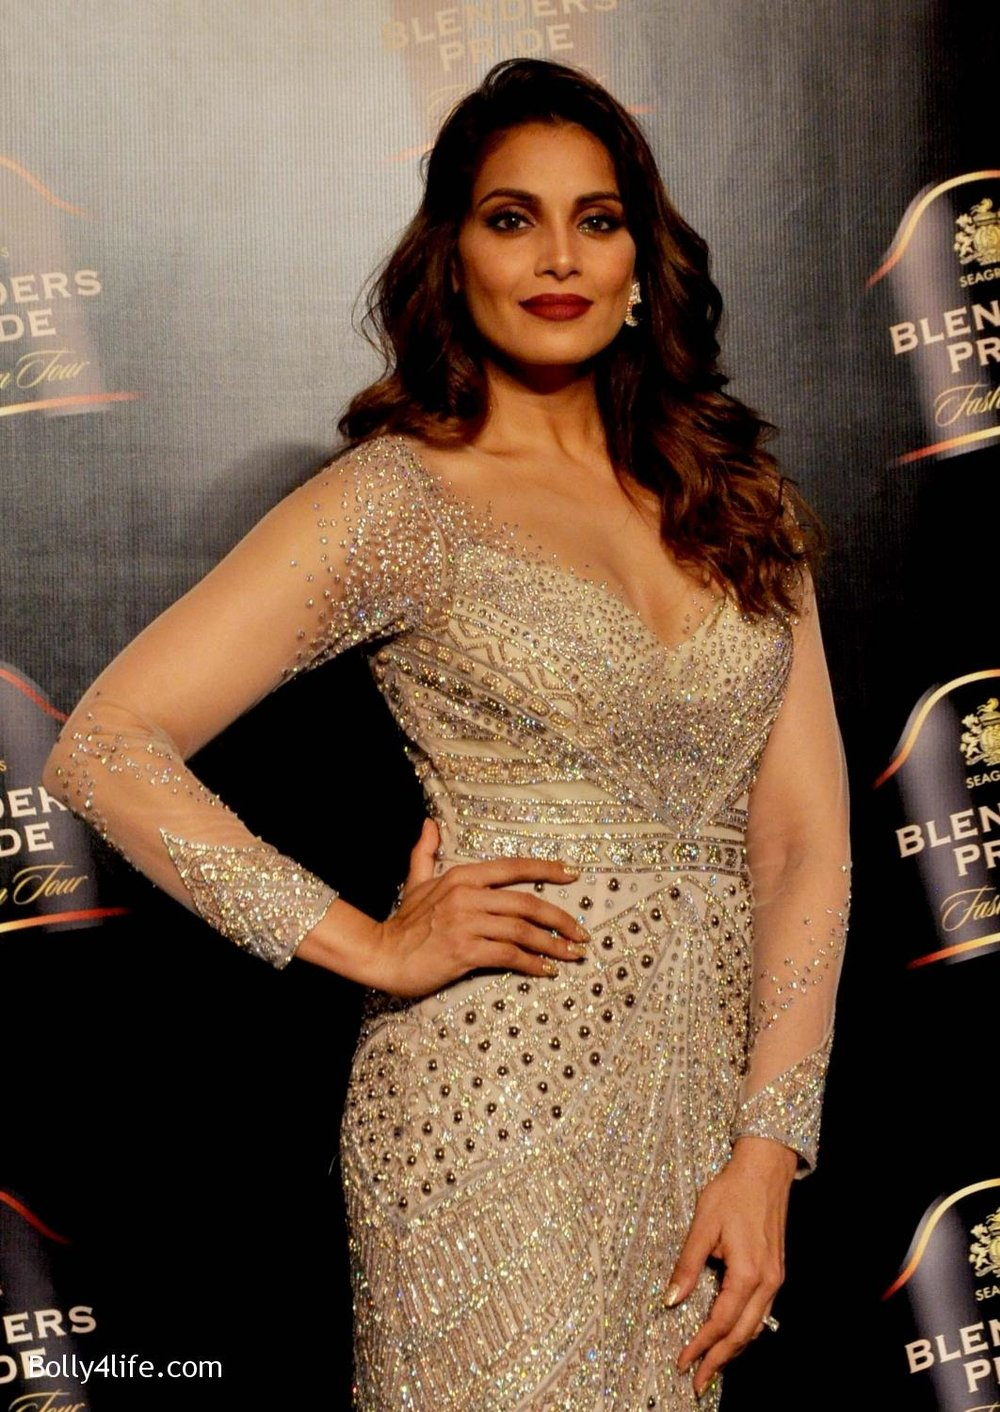 Bipasha-Basu-walks-the-ramp-during-Blenders-Pride-Fashion-Tour-2016-in-Kolkata-19.jpg